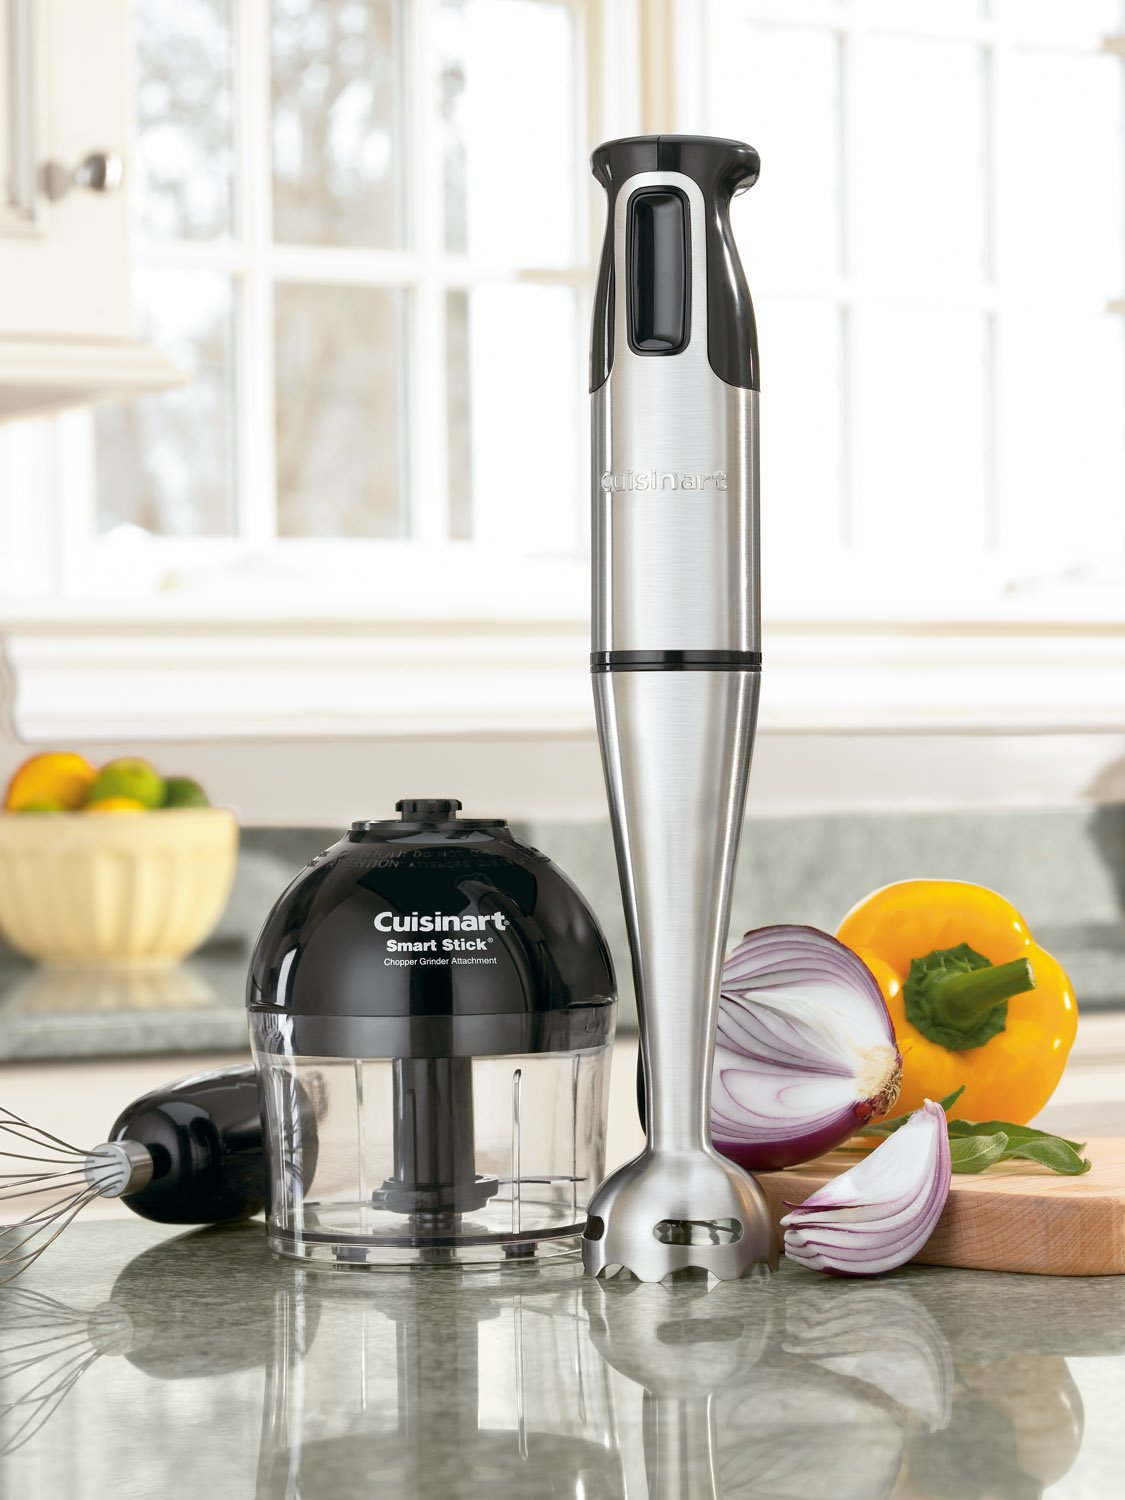 Cuisinart CSB-77 Smart Stick Hand Blender with Whisk and Chopper Attachments by Cuisinart